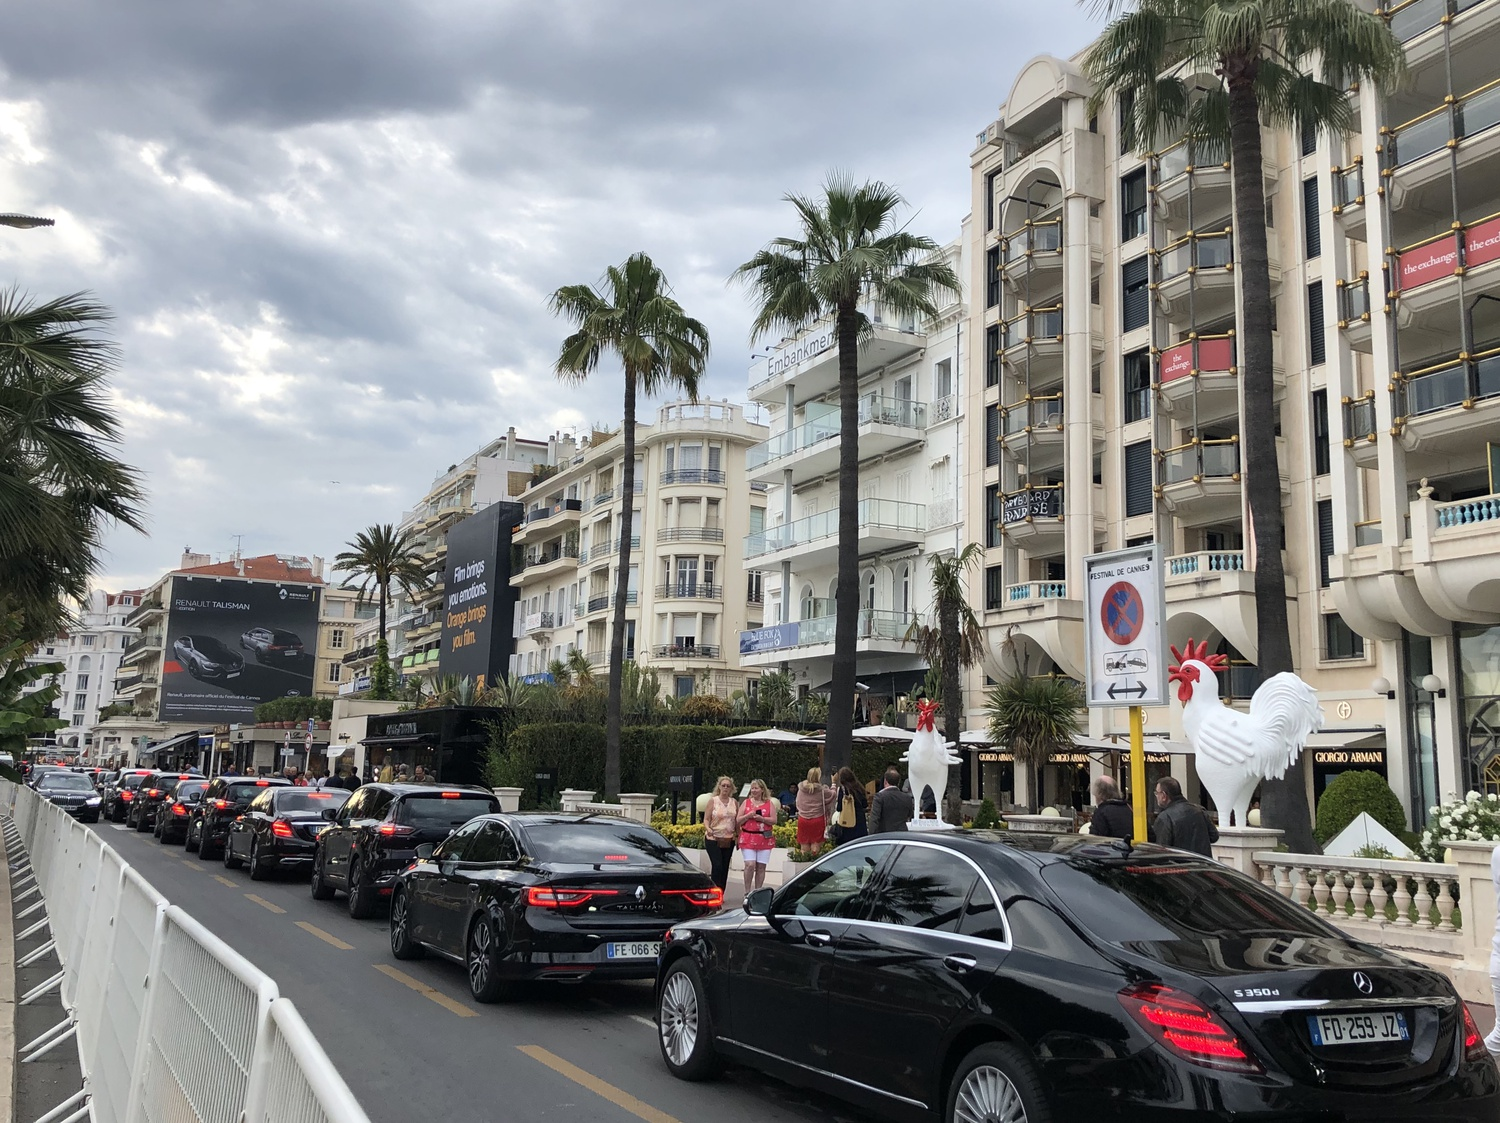 A line of cars (undoubtedly carrying celebrities galore) occupy la Croisette.